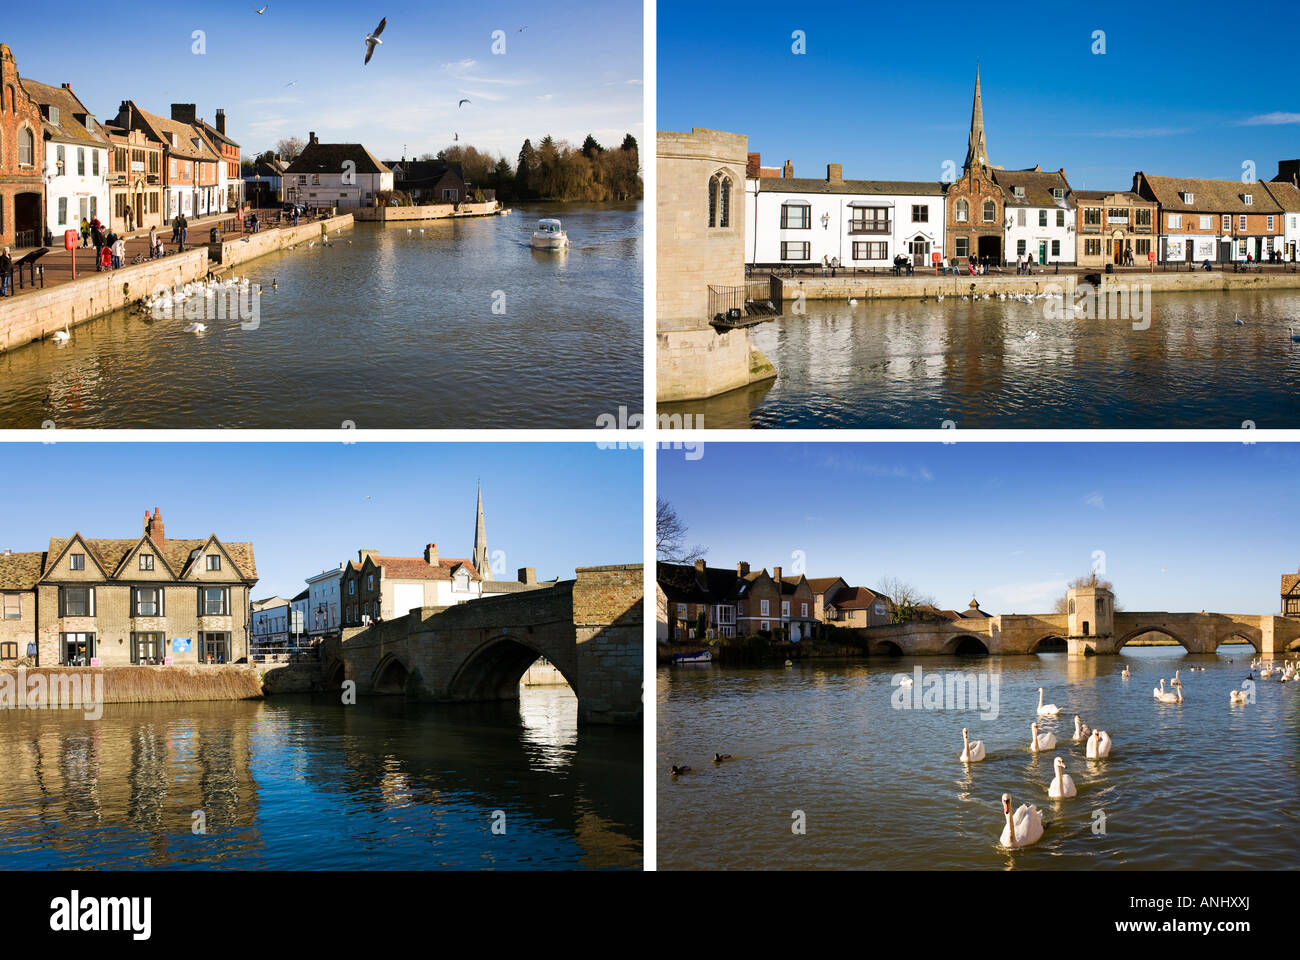 Four Images Of A Traditional English Town All In The One Postcard Type Image, St Ives In Cambridgeshire England - Stock Image